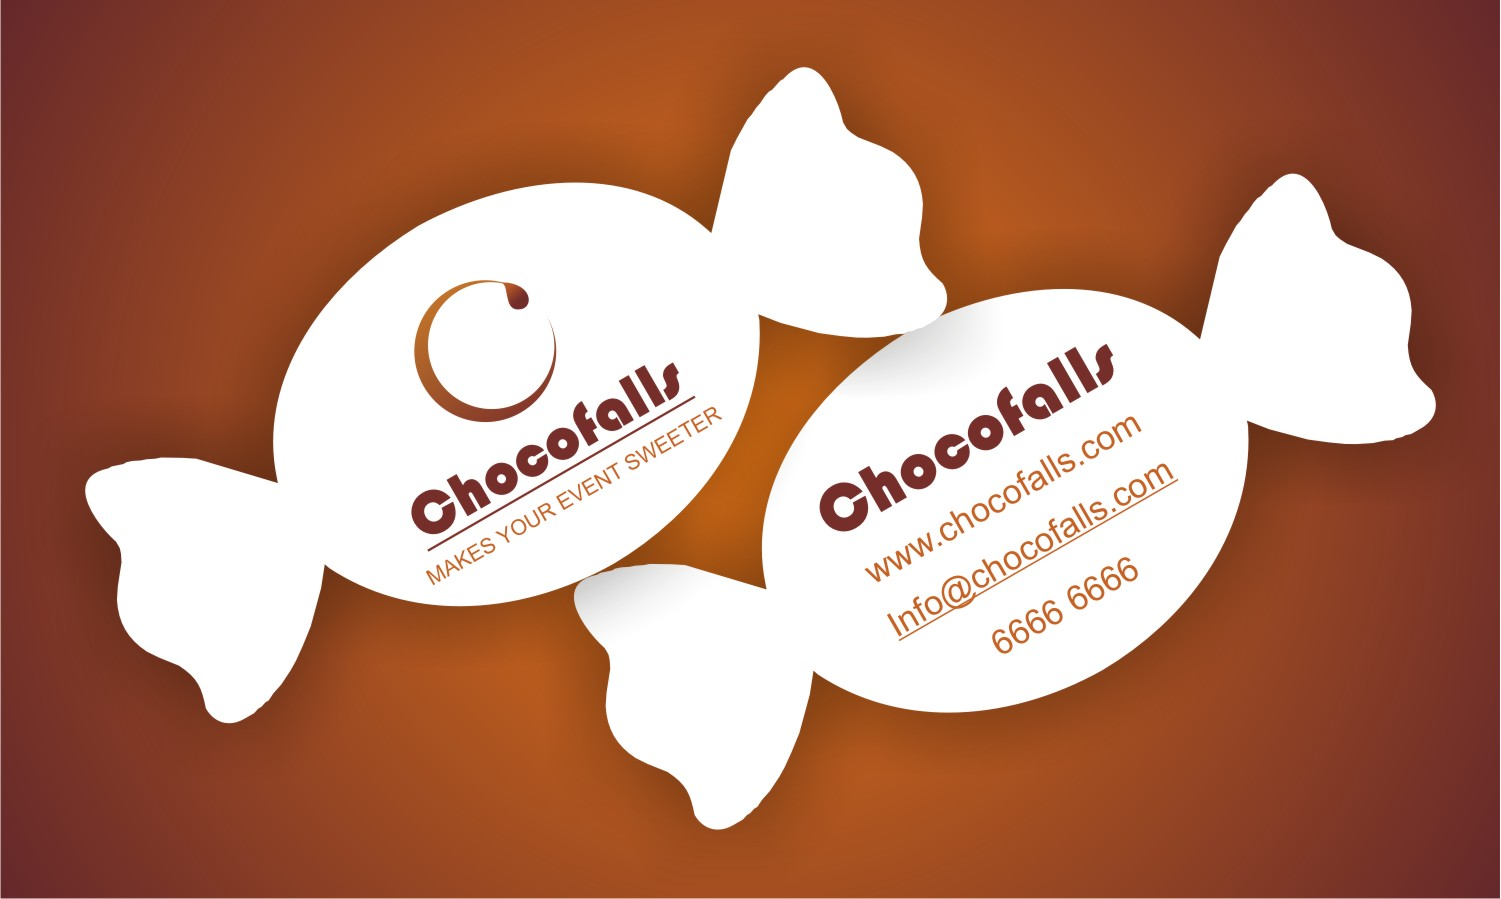 Unique business card for chocolate company harshini creative graphics this is an unique business card for all chocolate related companies colourmoves